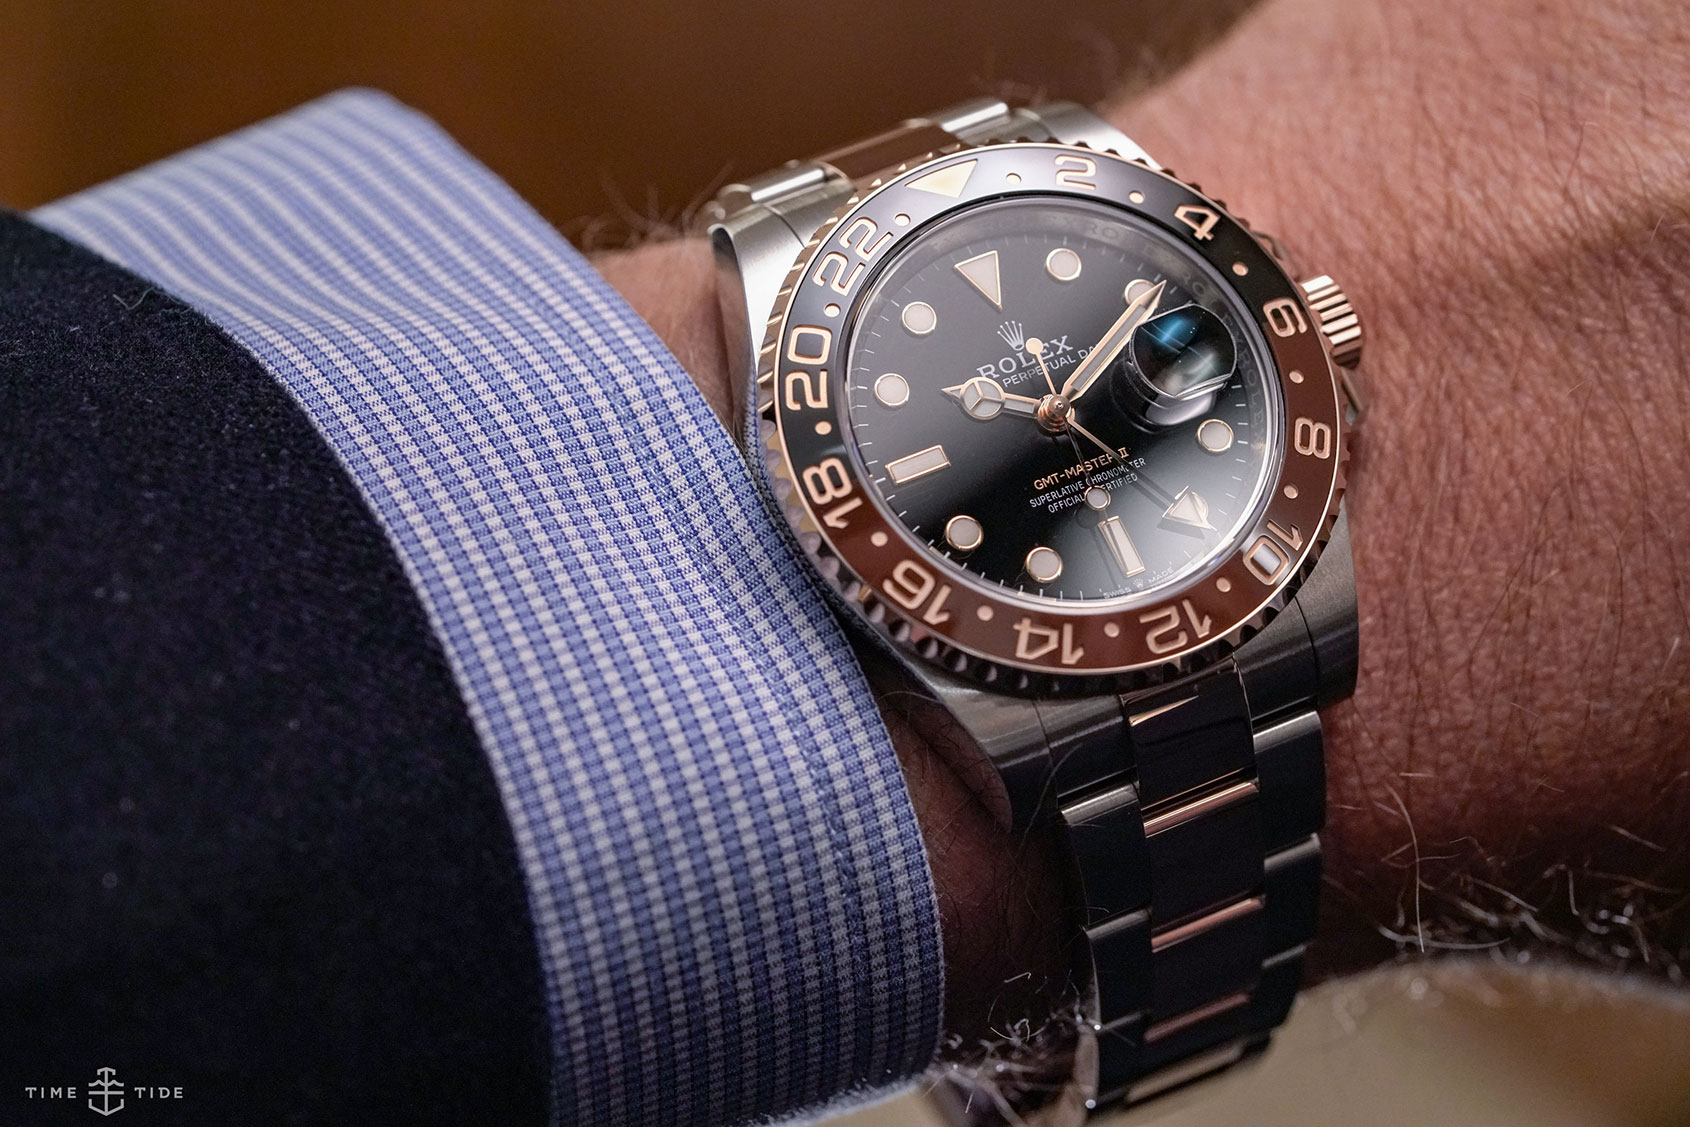 VIDEO: The 5 big Rolex releases of Basel 2018, including a cool Pepsi and warm root beer, and a gem of a Daytona